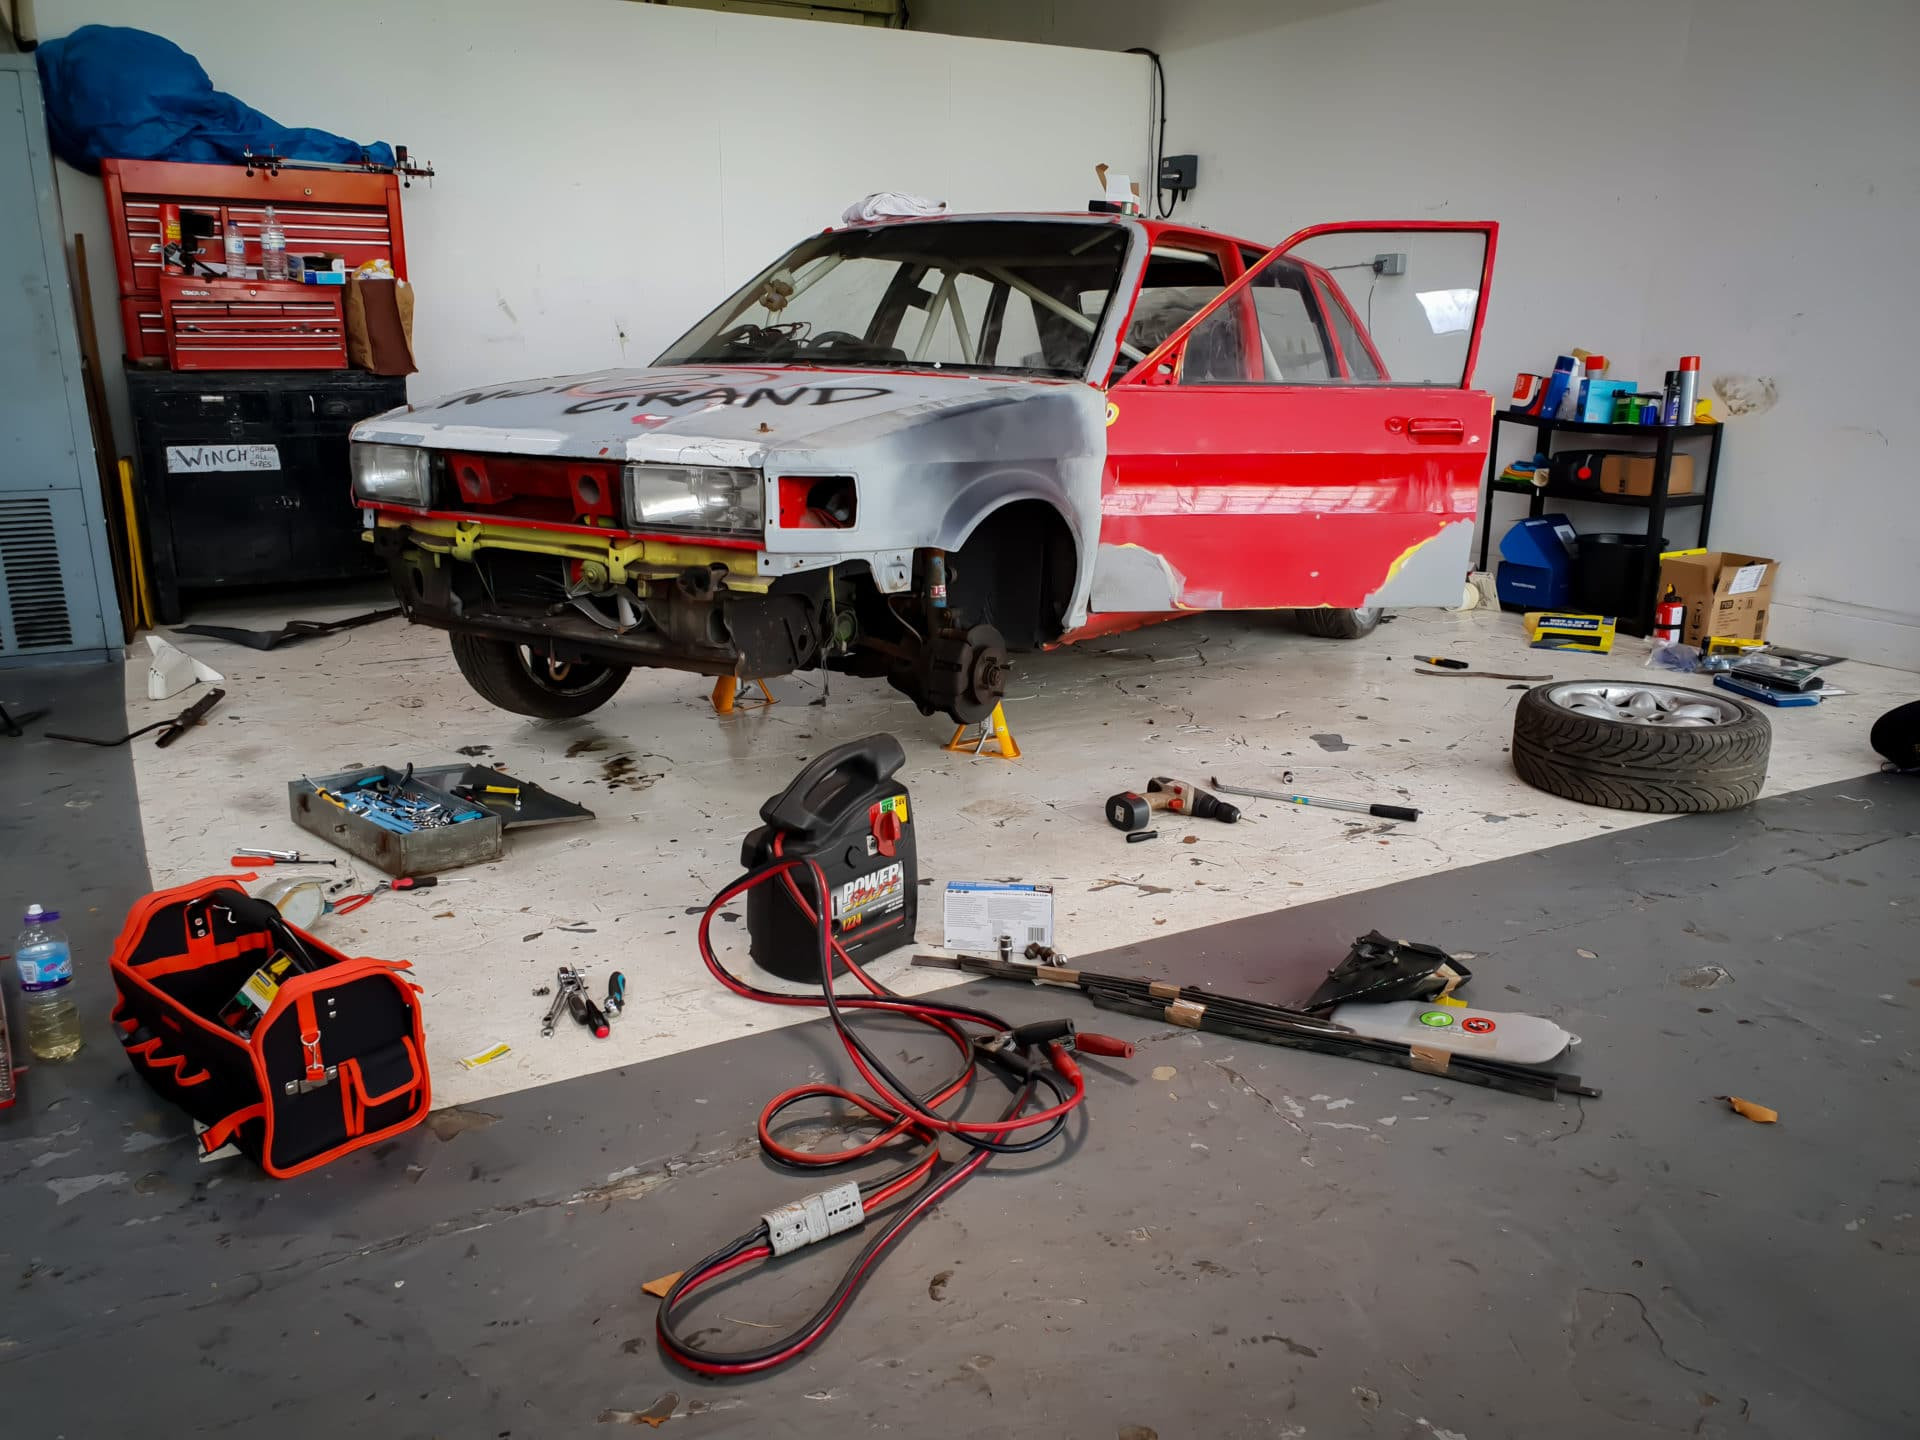 Maestro, MG Cup, MG Challenger, race car, trace car, hot hatch, Austin maestro, Rover Maestro, MG Maestro, roll cage, classic car, retro car, british leyland, motoring, automotive, not2grand, not2grand.co.uk, adrian flux